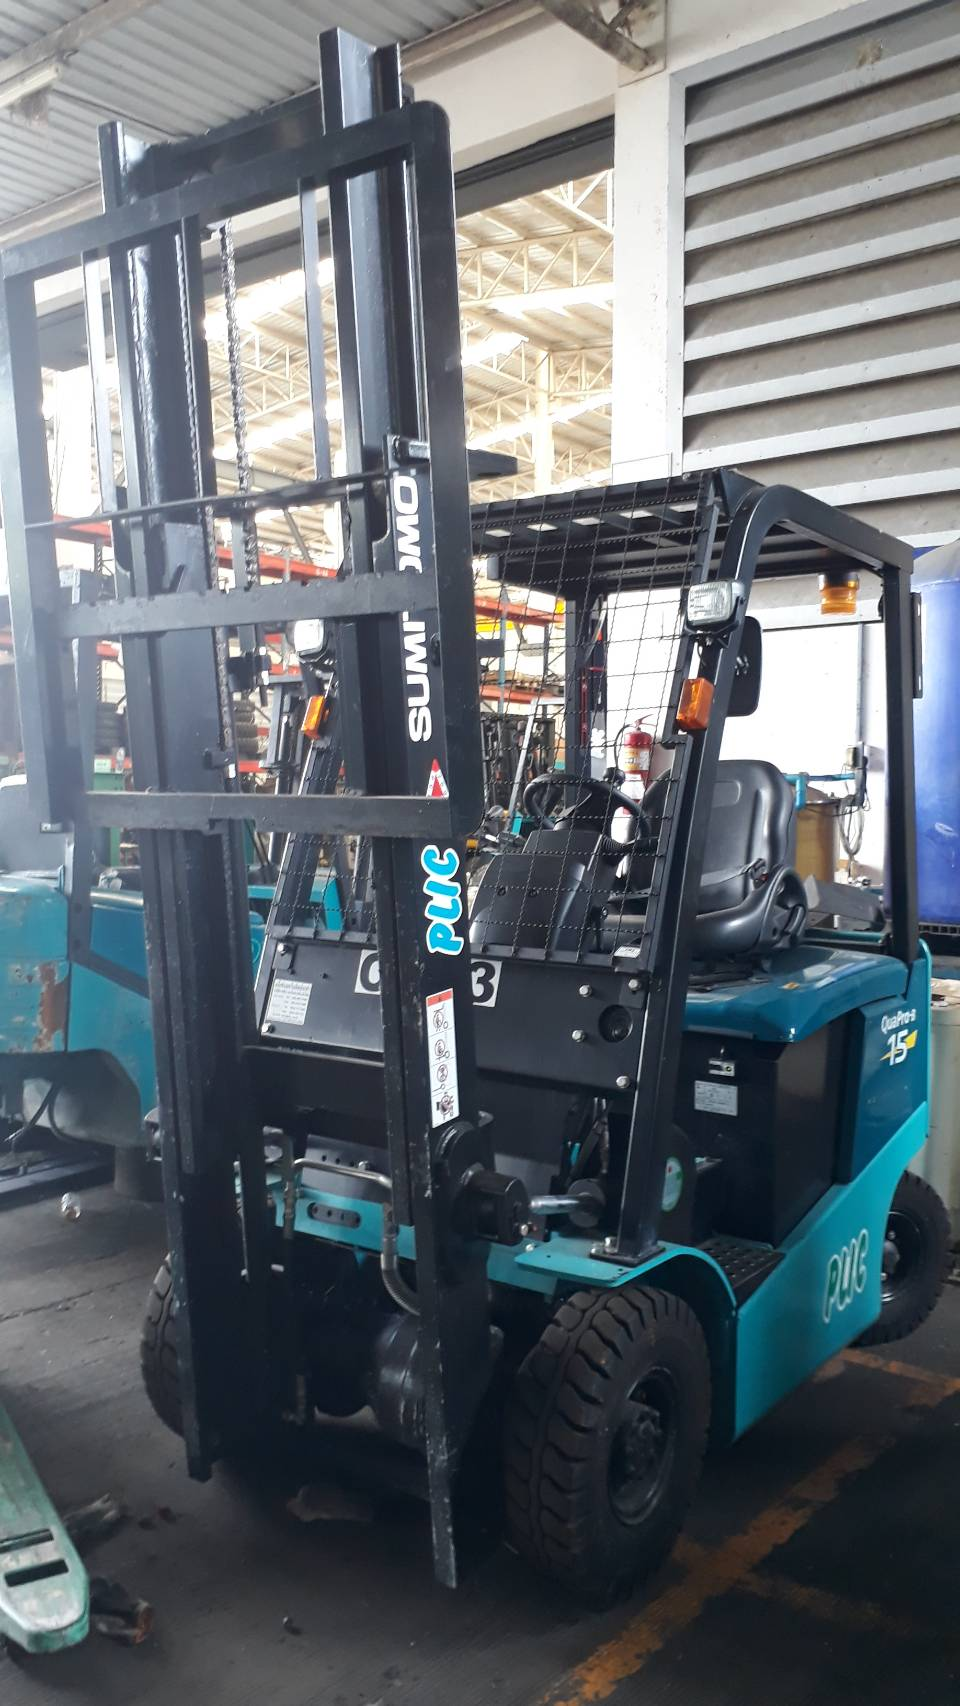 SUMITOMO FORKLIFT COUNTER 8FB15PXIII-V300, BATTERY, 1.5 Ton